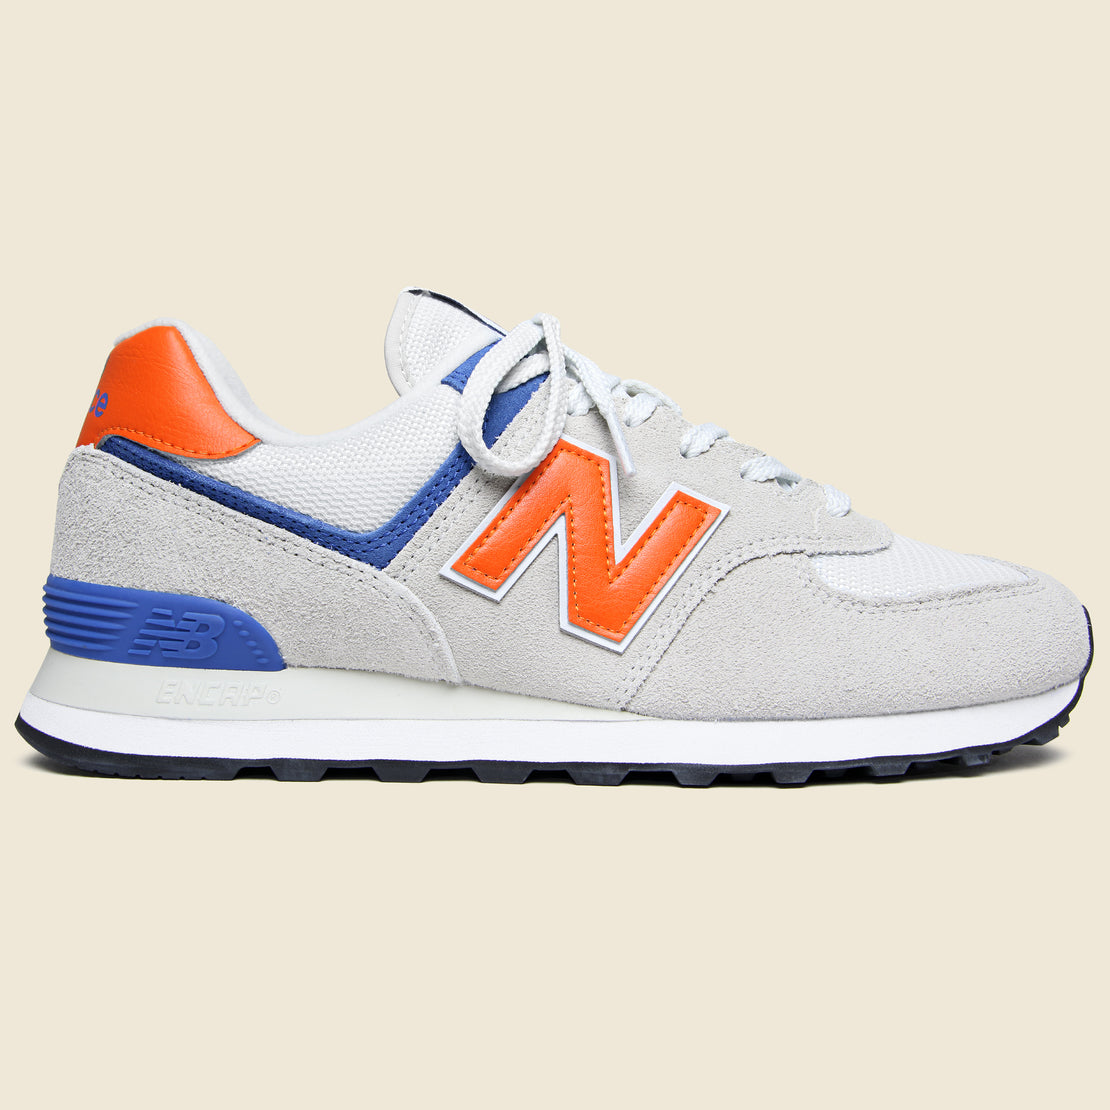 new style e0d55 19aa7 574 Sneaker - Blue/Orange